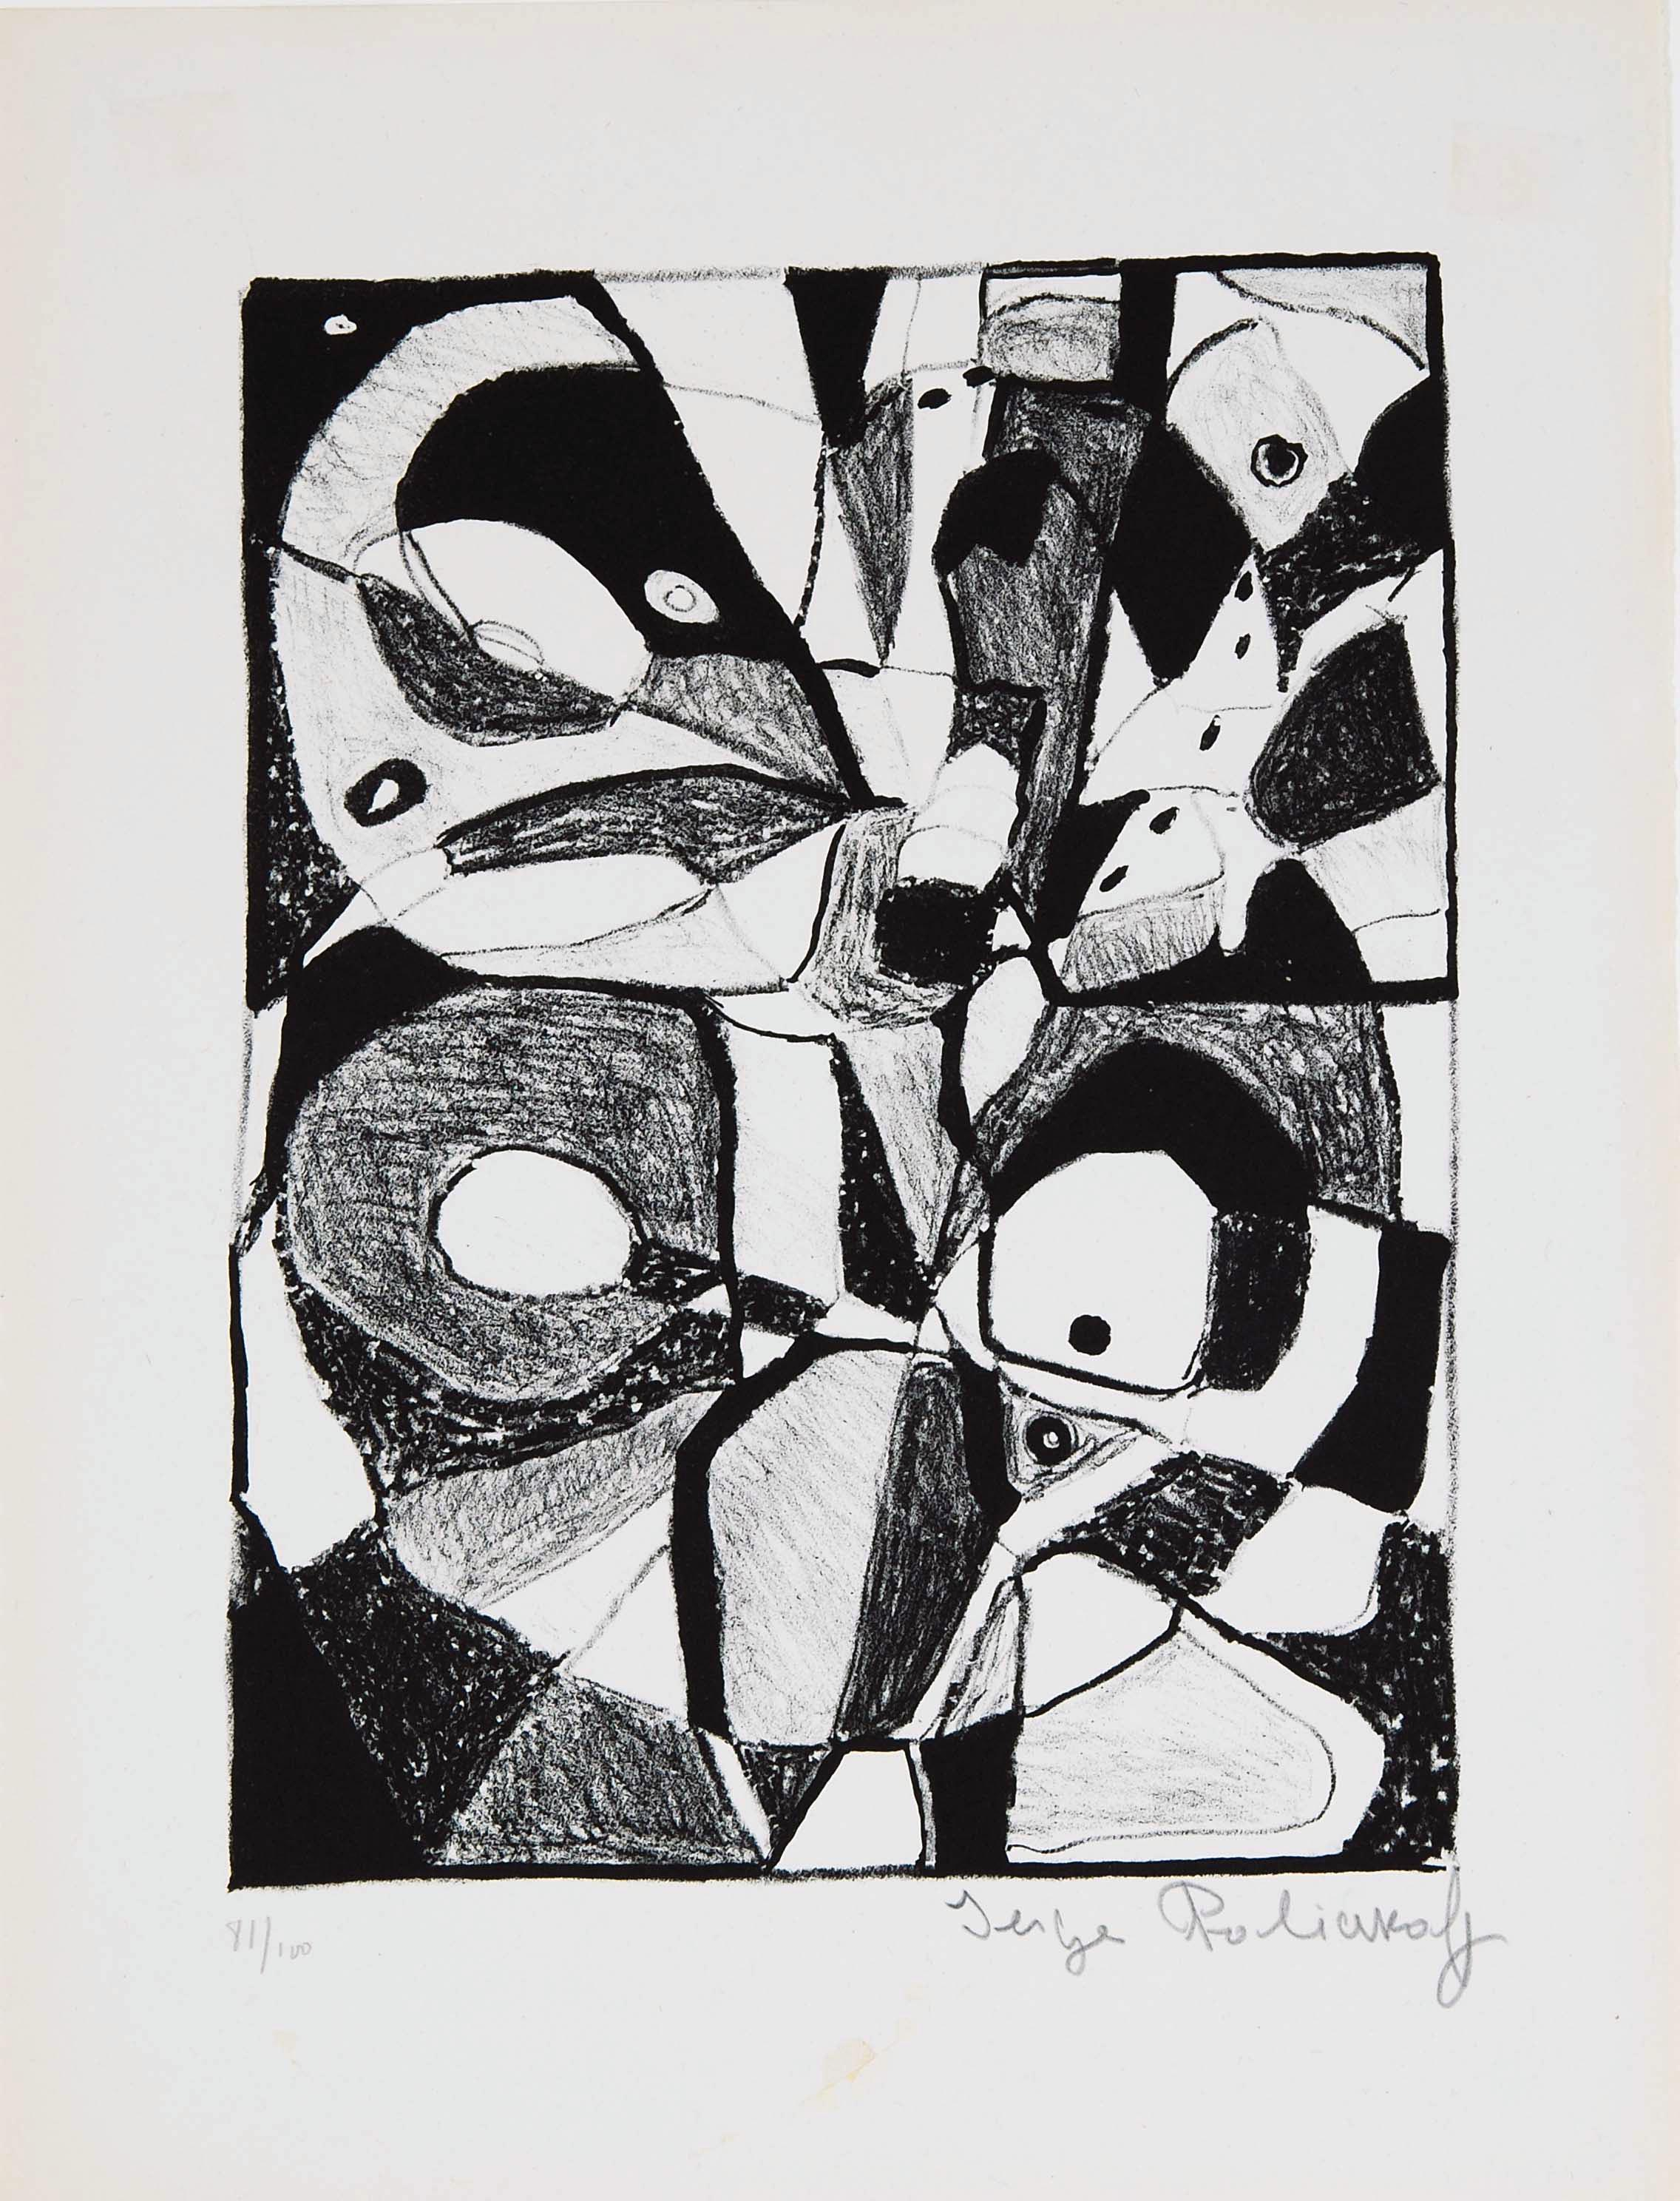 Serge Poliakoff, Composition, 1946